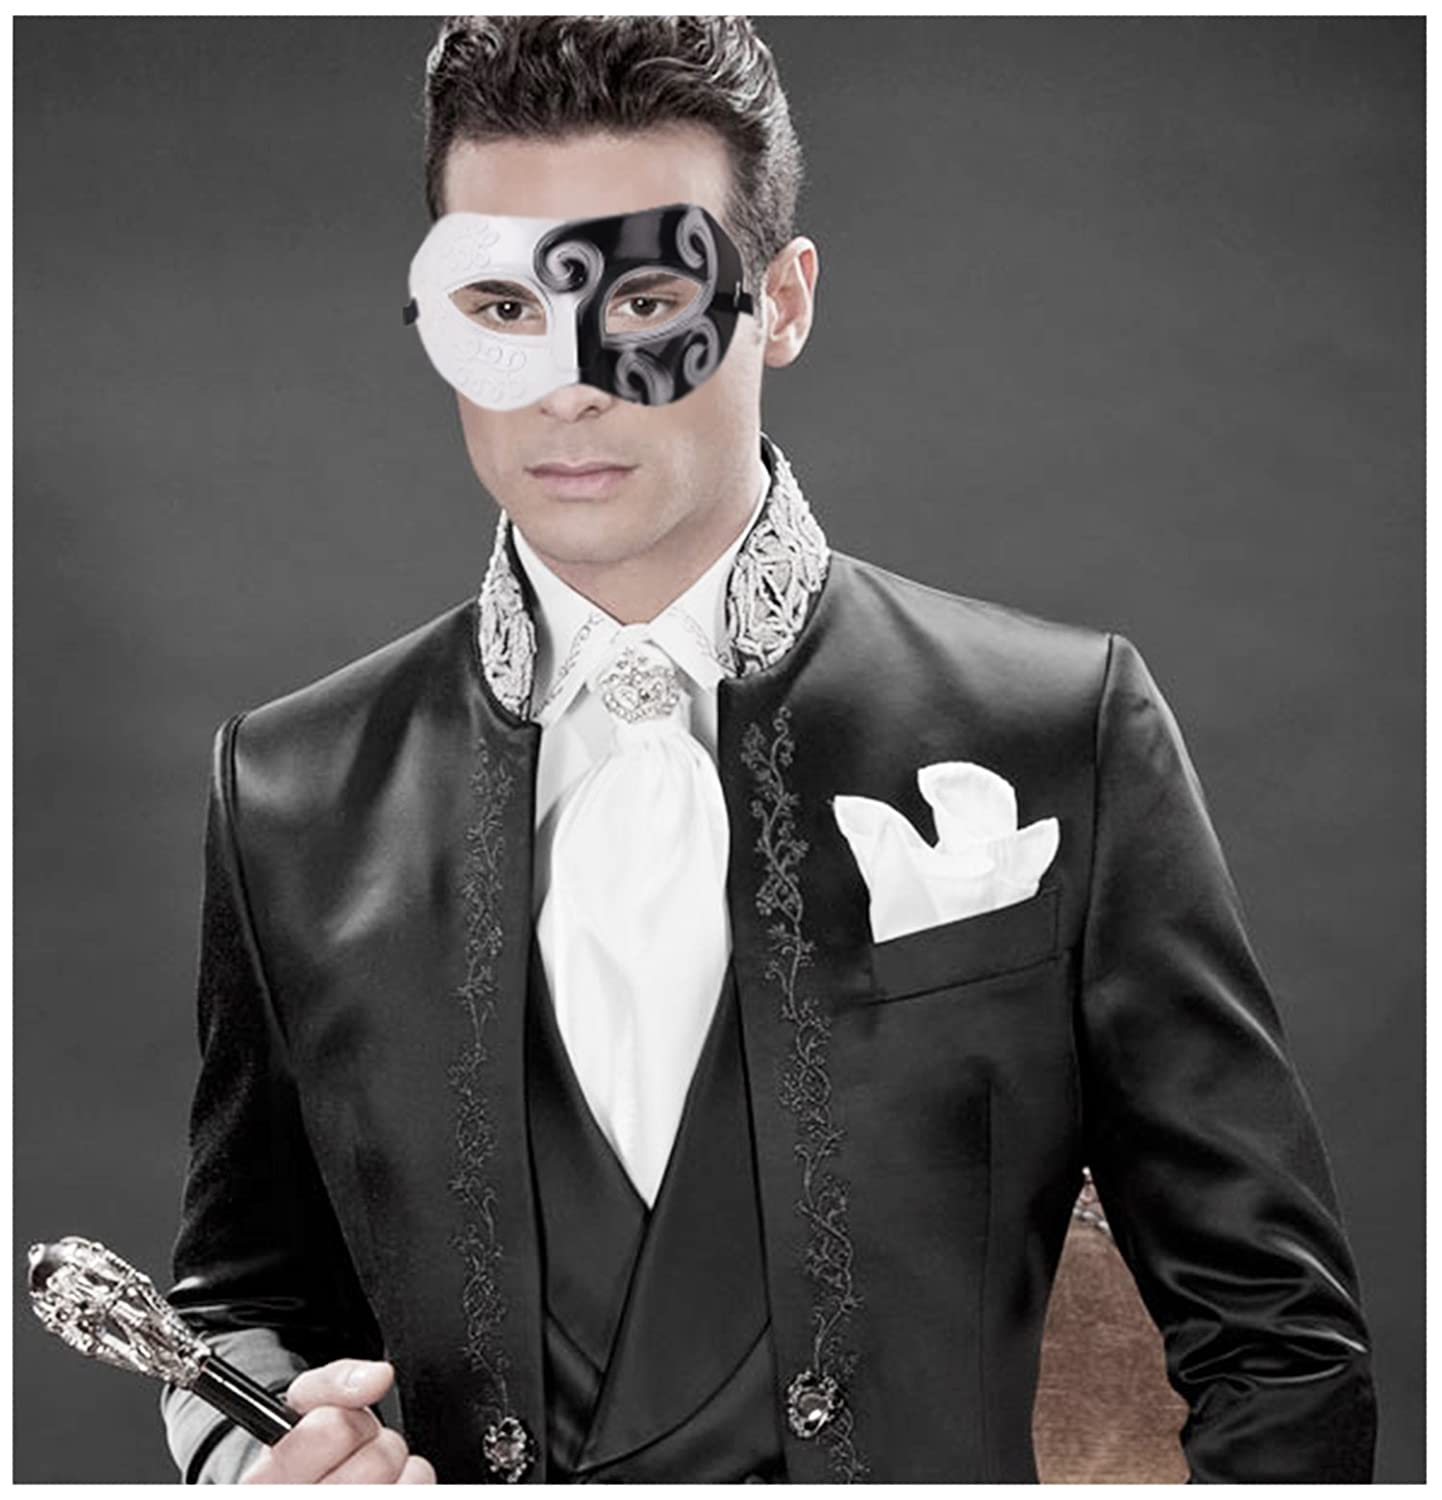 1f17bf724b4 Buy Coxeer Mens Masquerade Mask Greek Roman Party Mask Mardi Gras Halloween  Mask () One Size Half Face Mask Online at Low Prices in India - Amazon.in